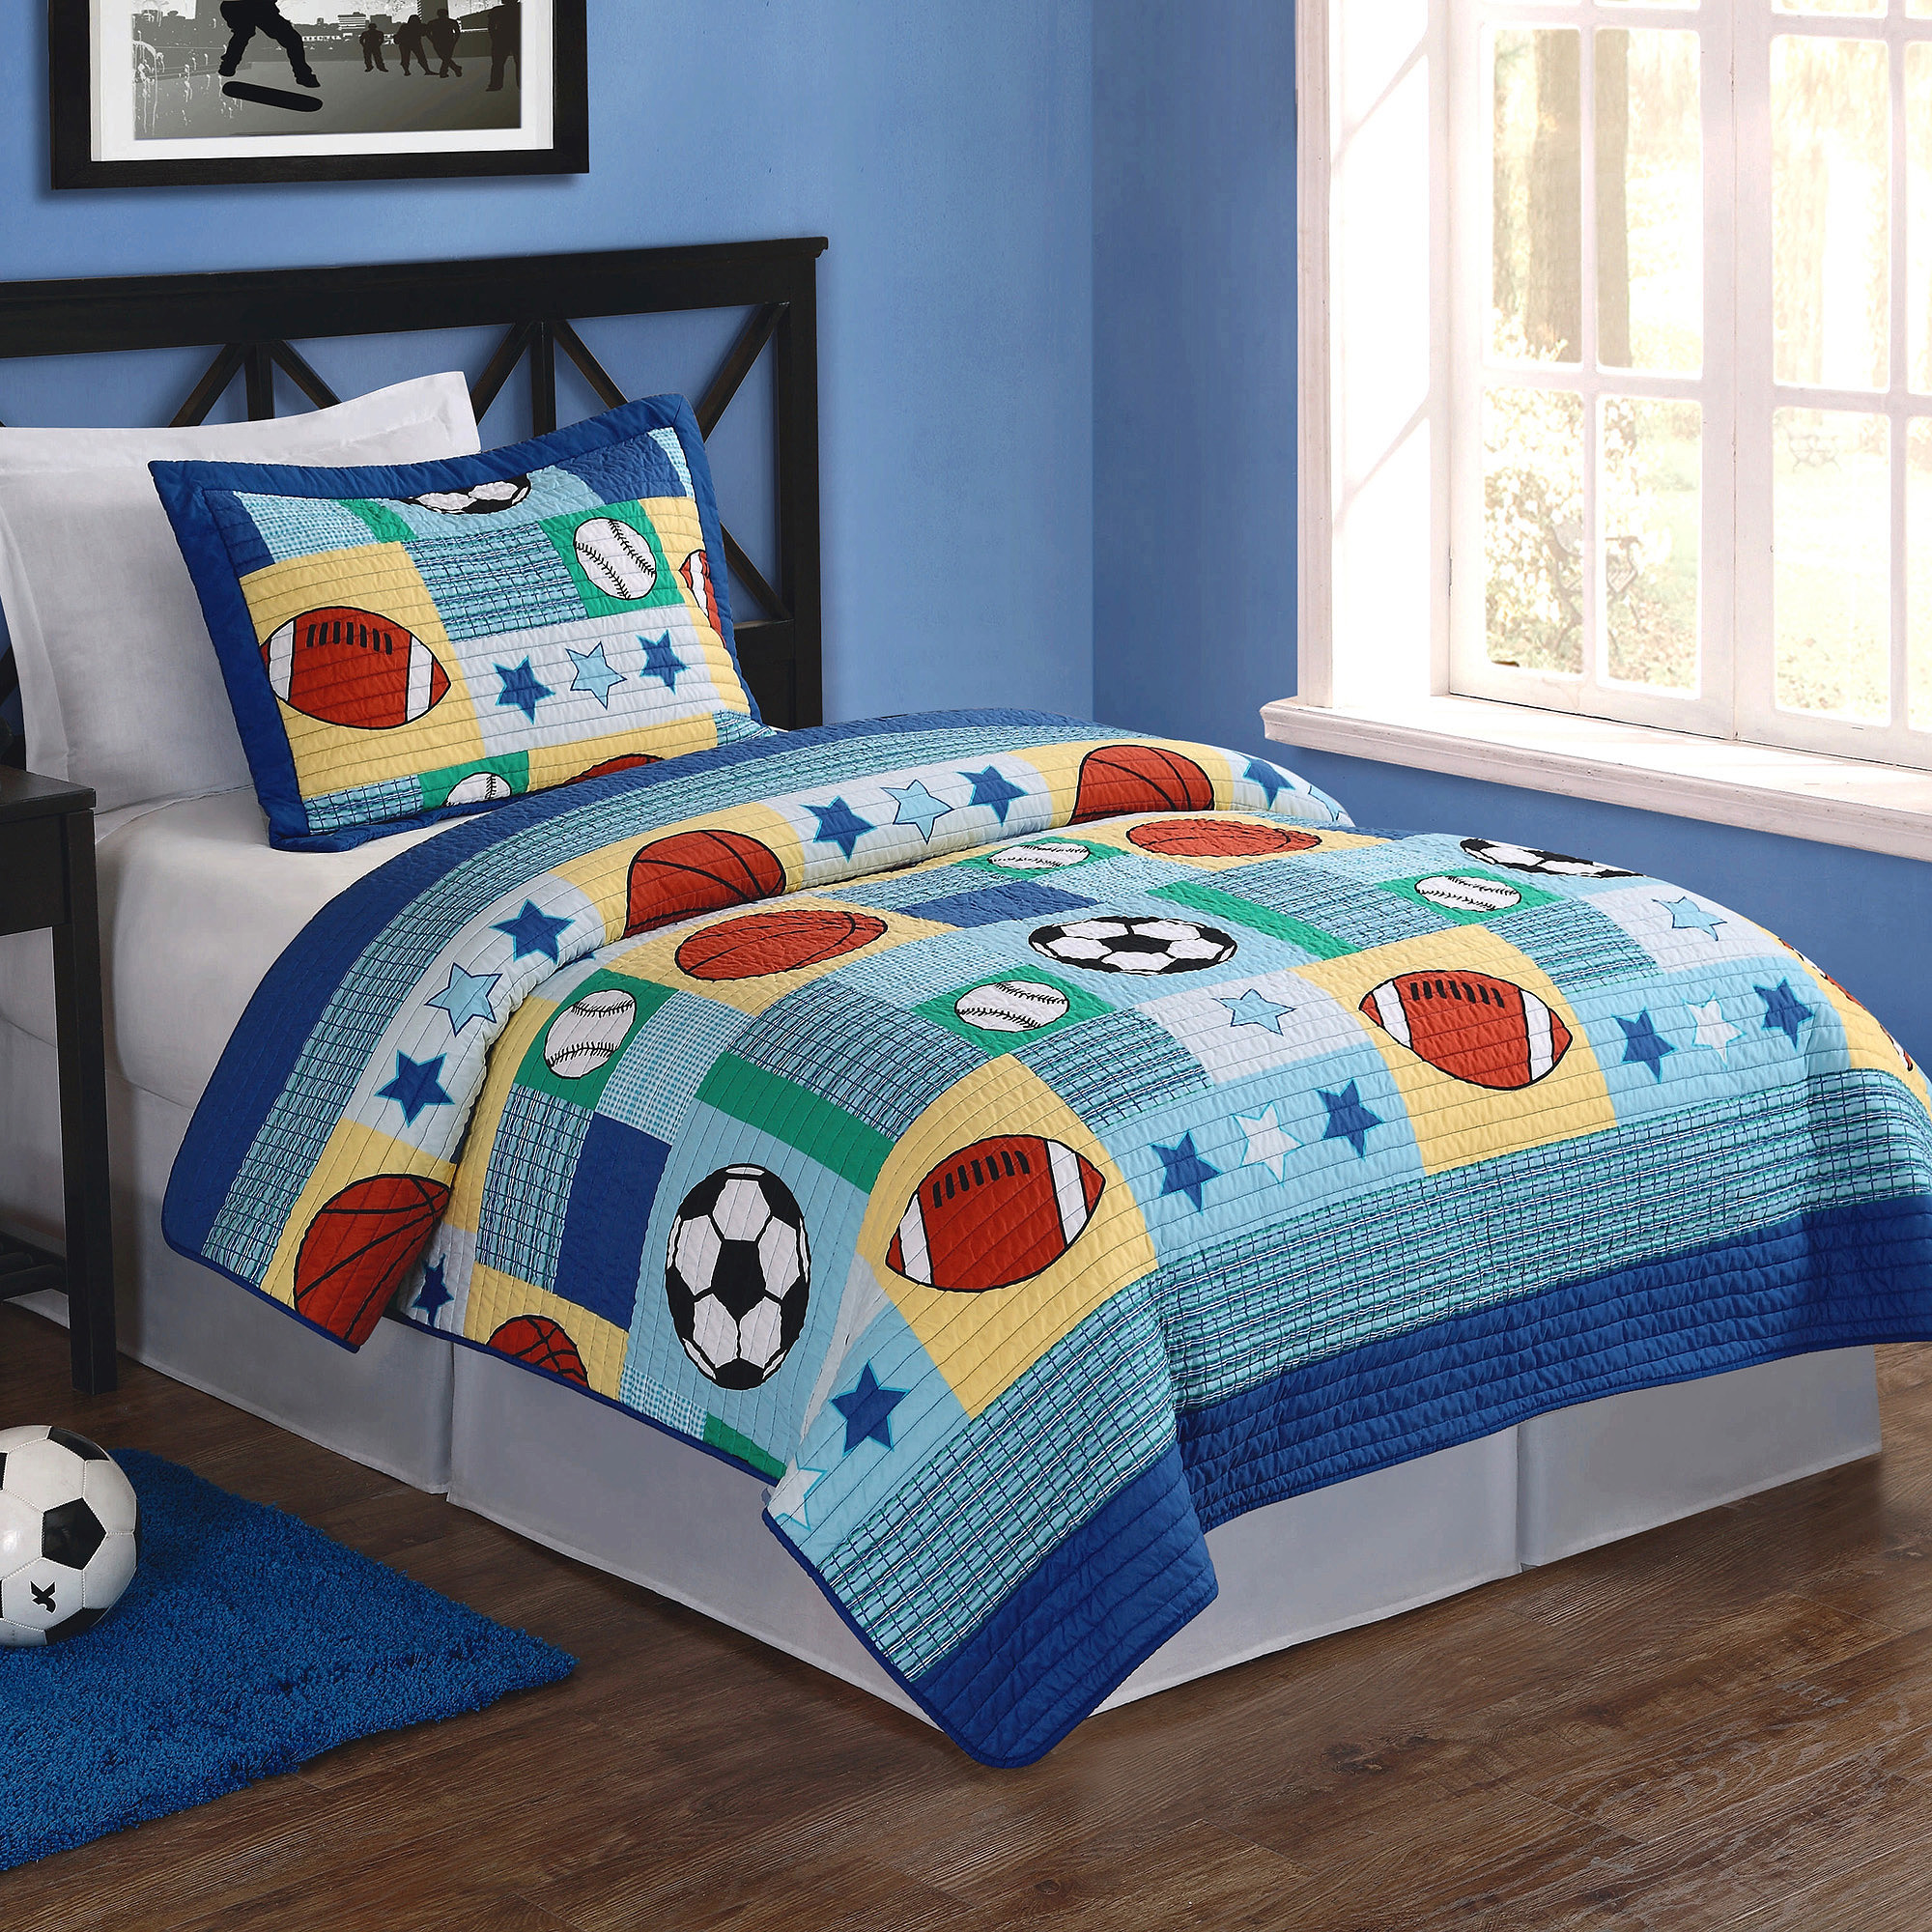 newborn best room cute boy round comforter bed turquoise bedroom comforters cars nursery purple sets duvet junior girls sheets set crib toddler bedding full infant baby sports ladybug